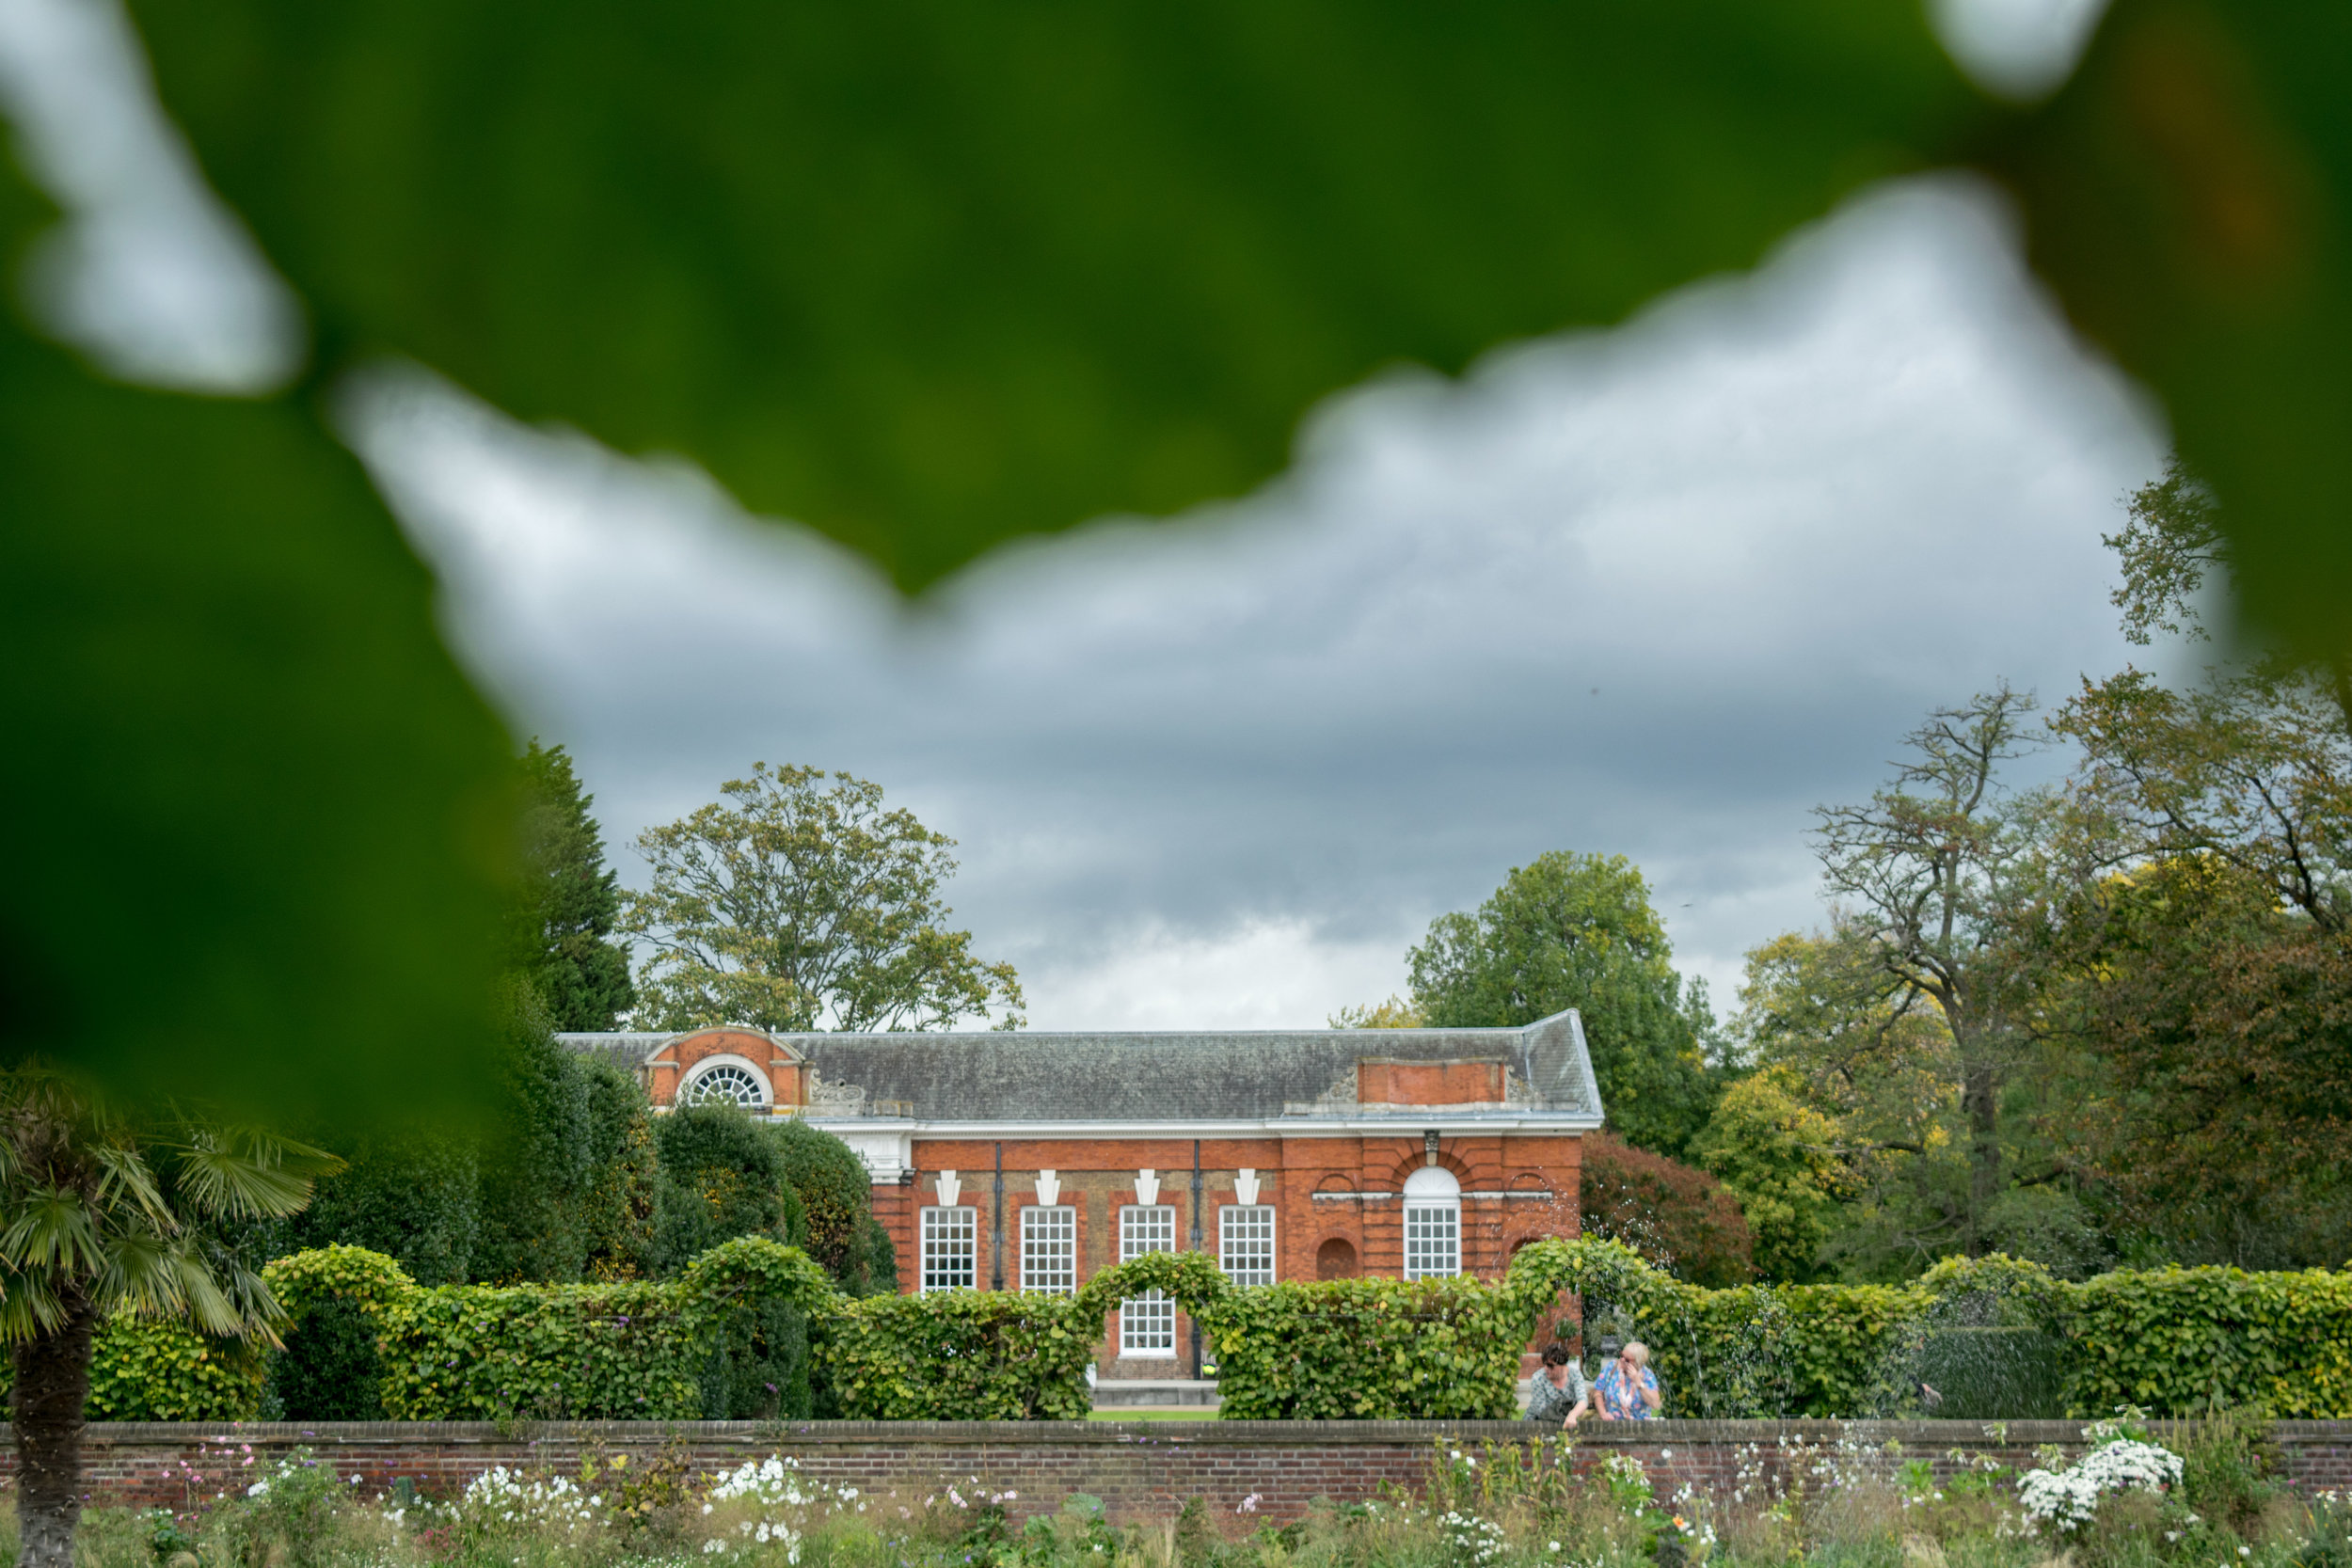 The Sunken Gardens and The Orangery